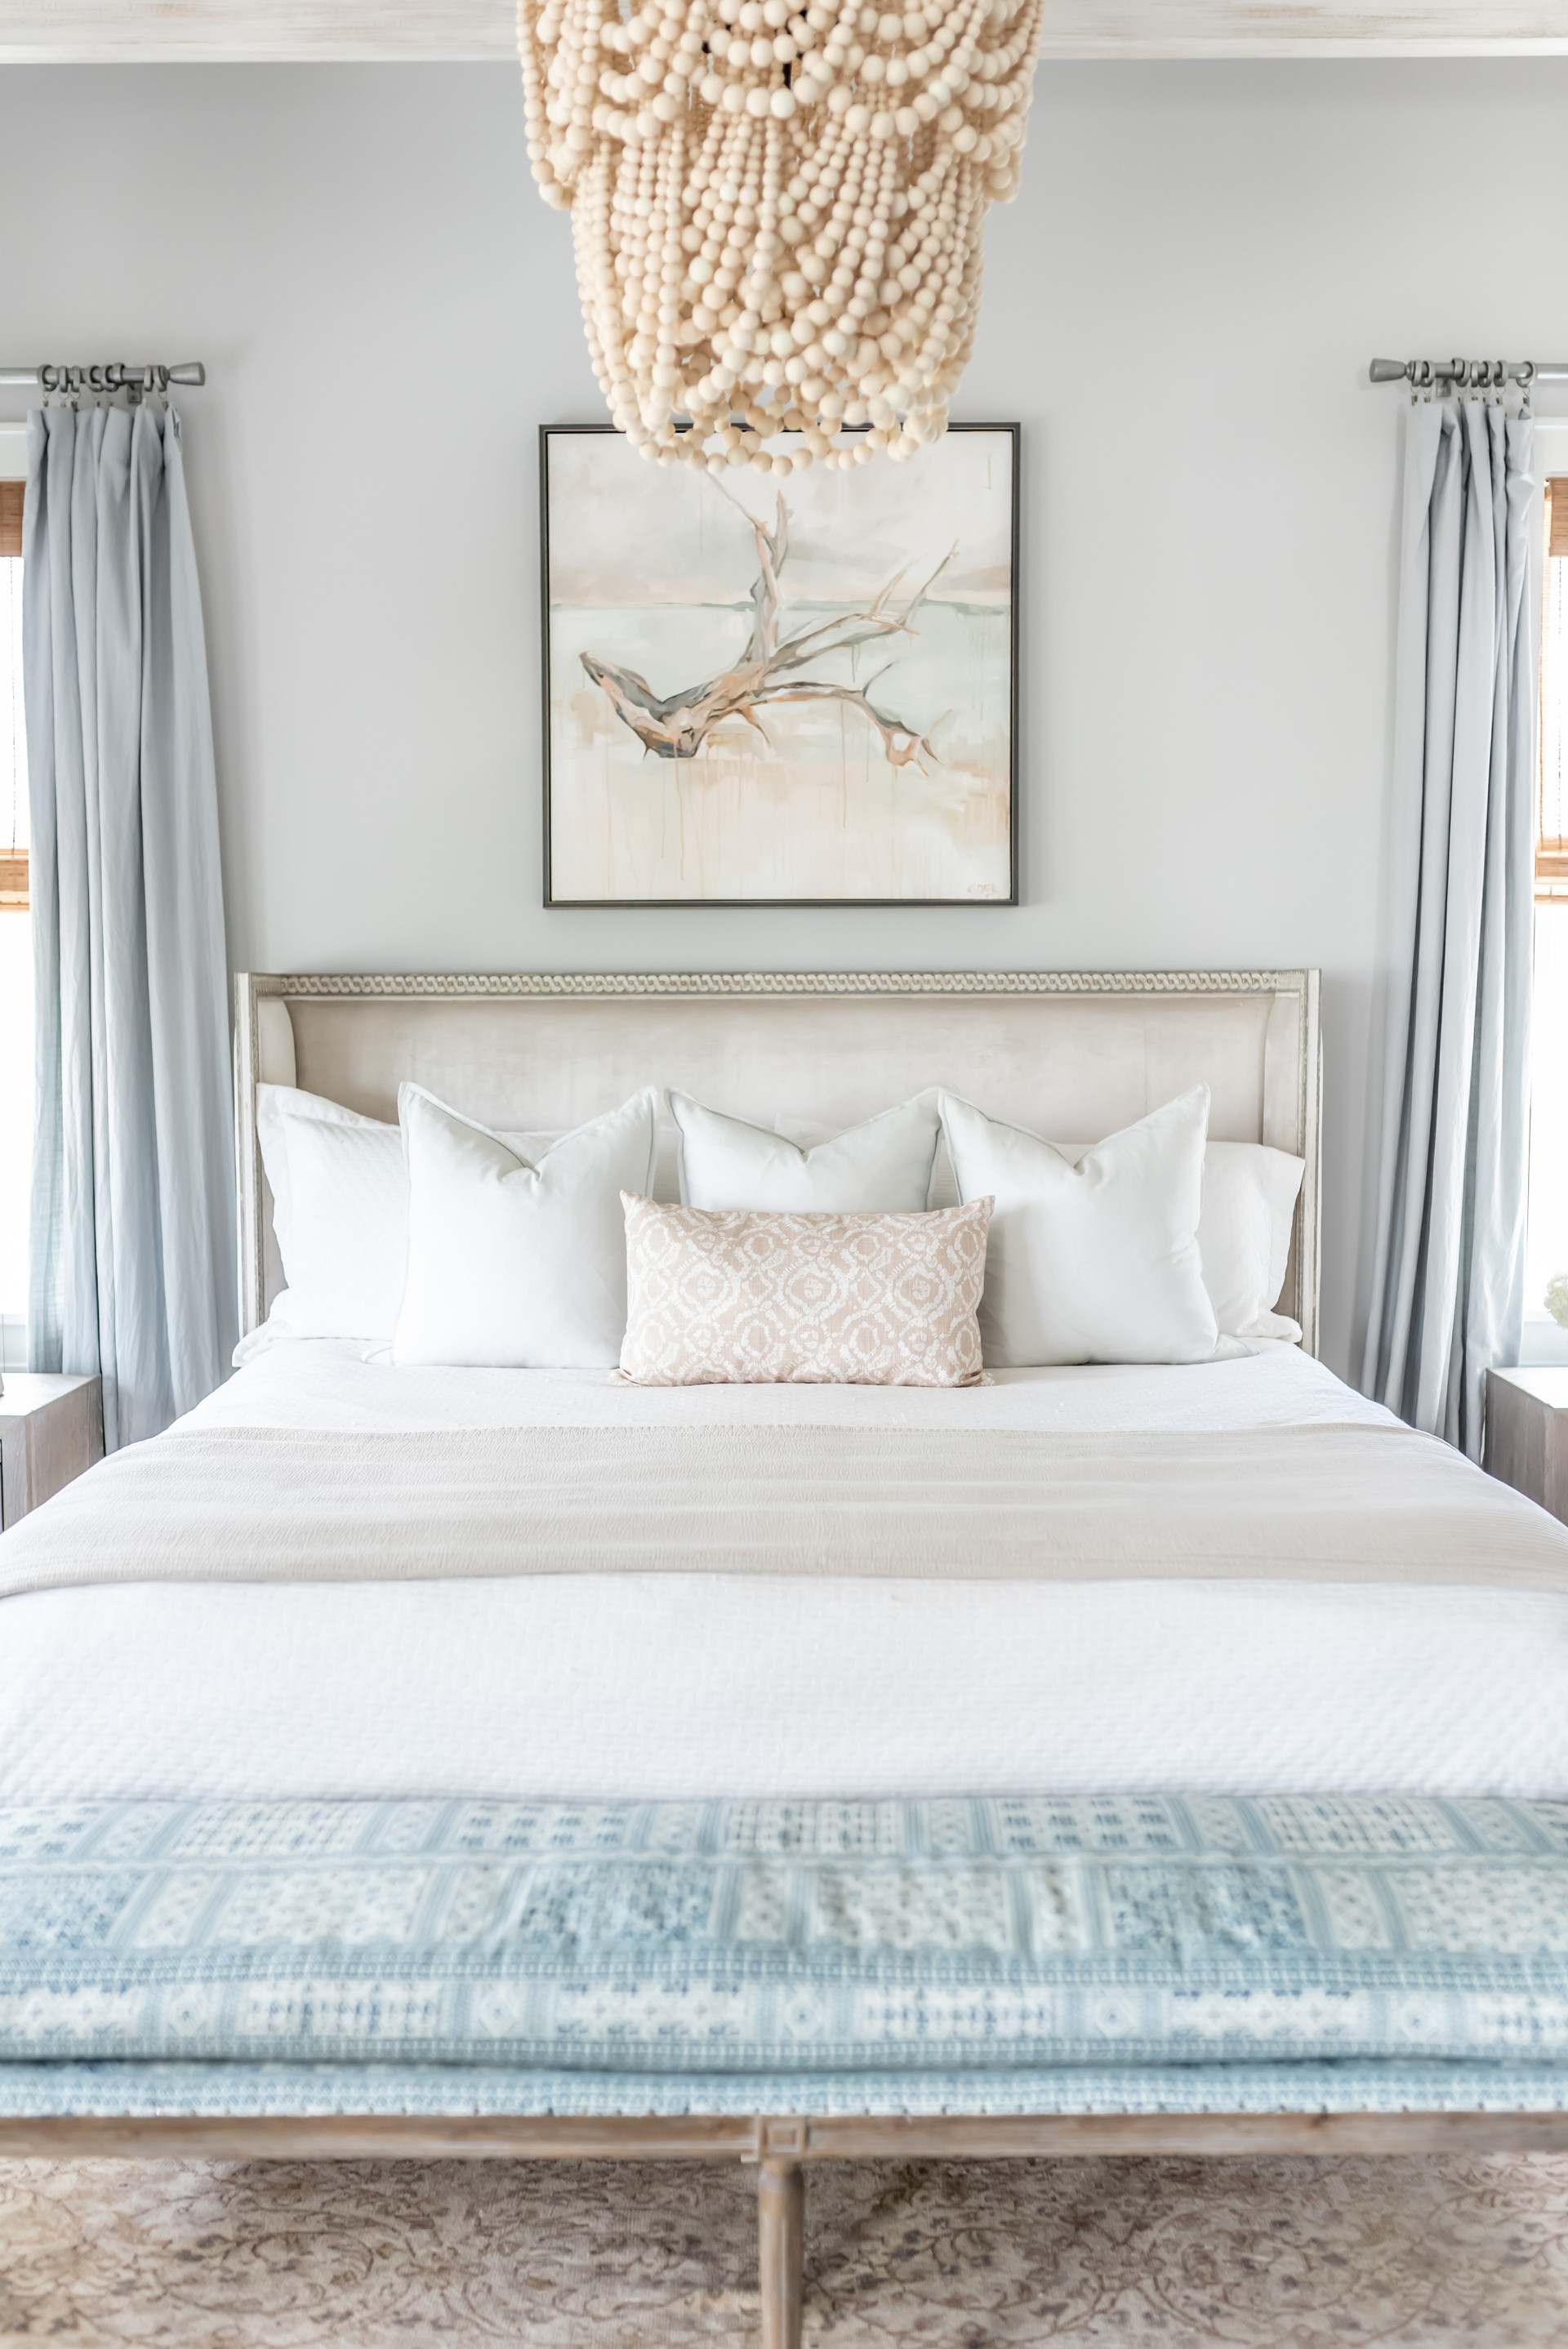 ADC-May1-2019-Master-Bedroom-24.jpg